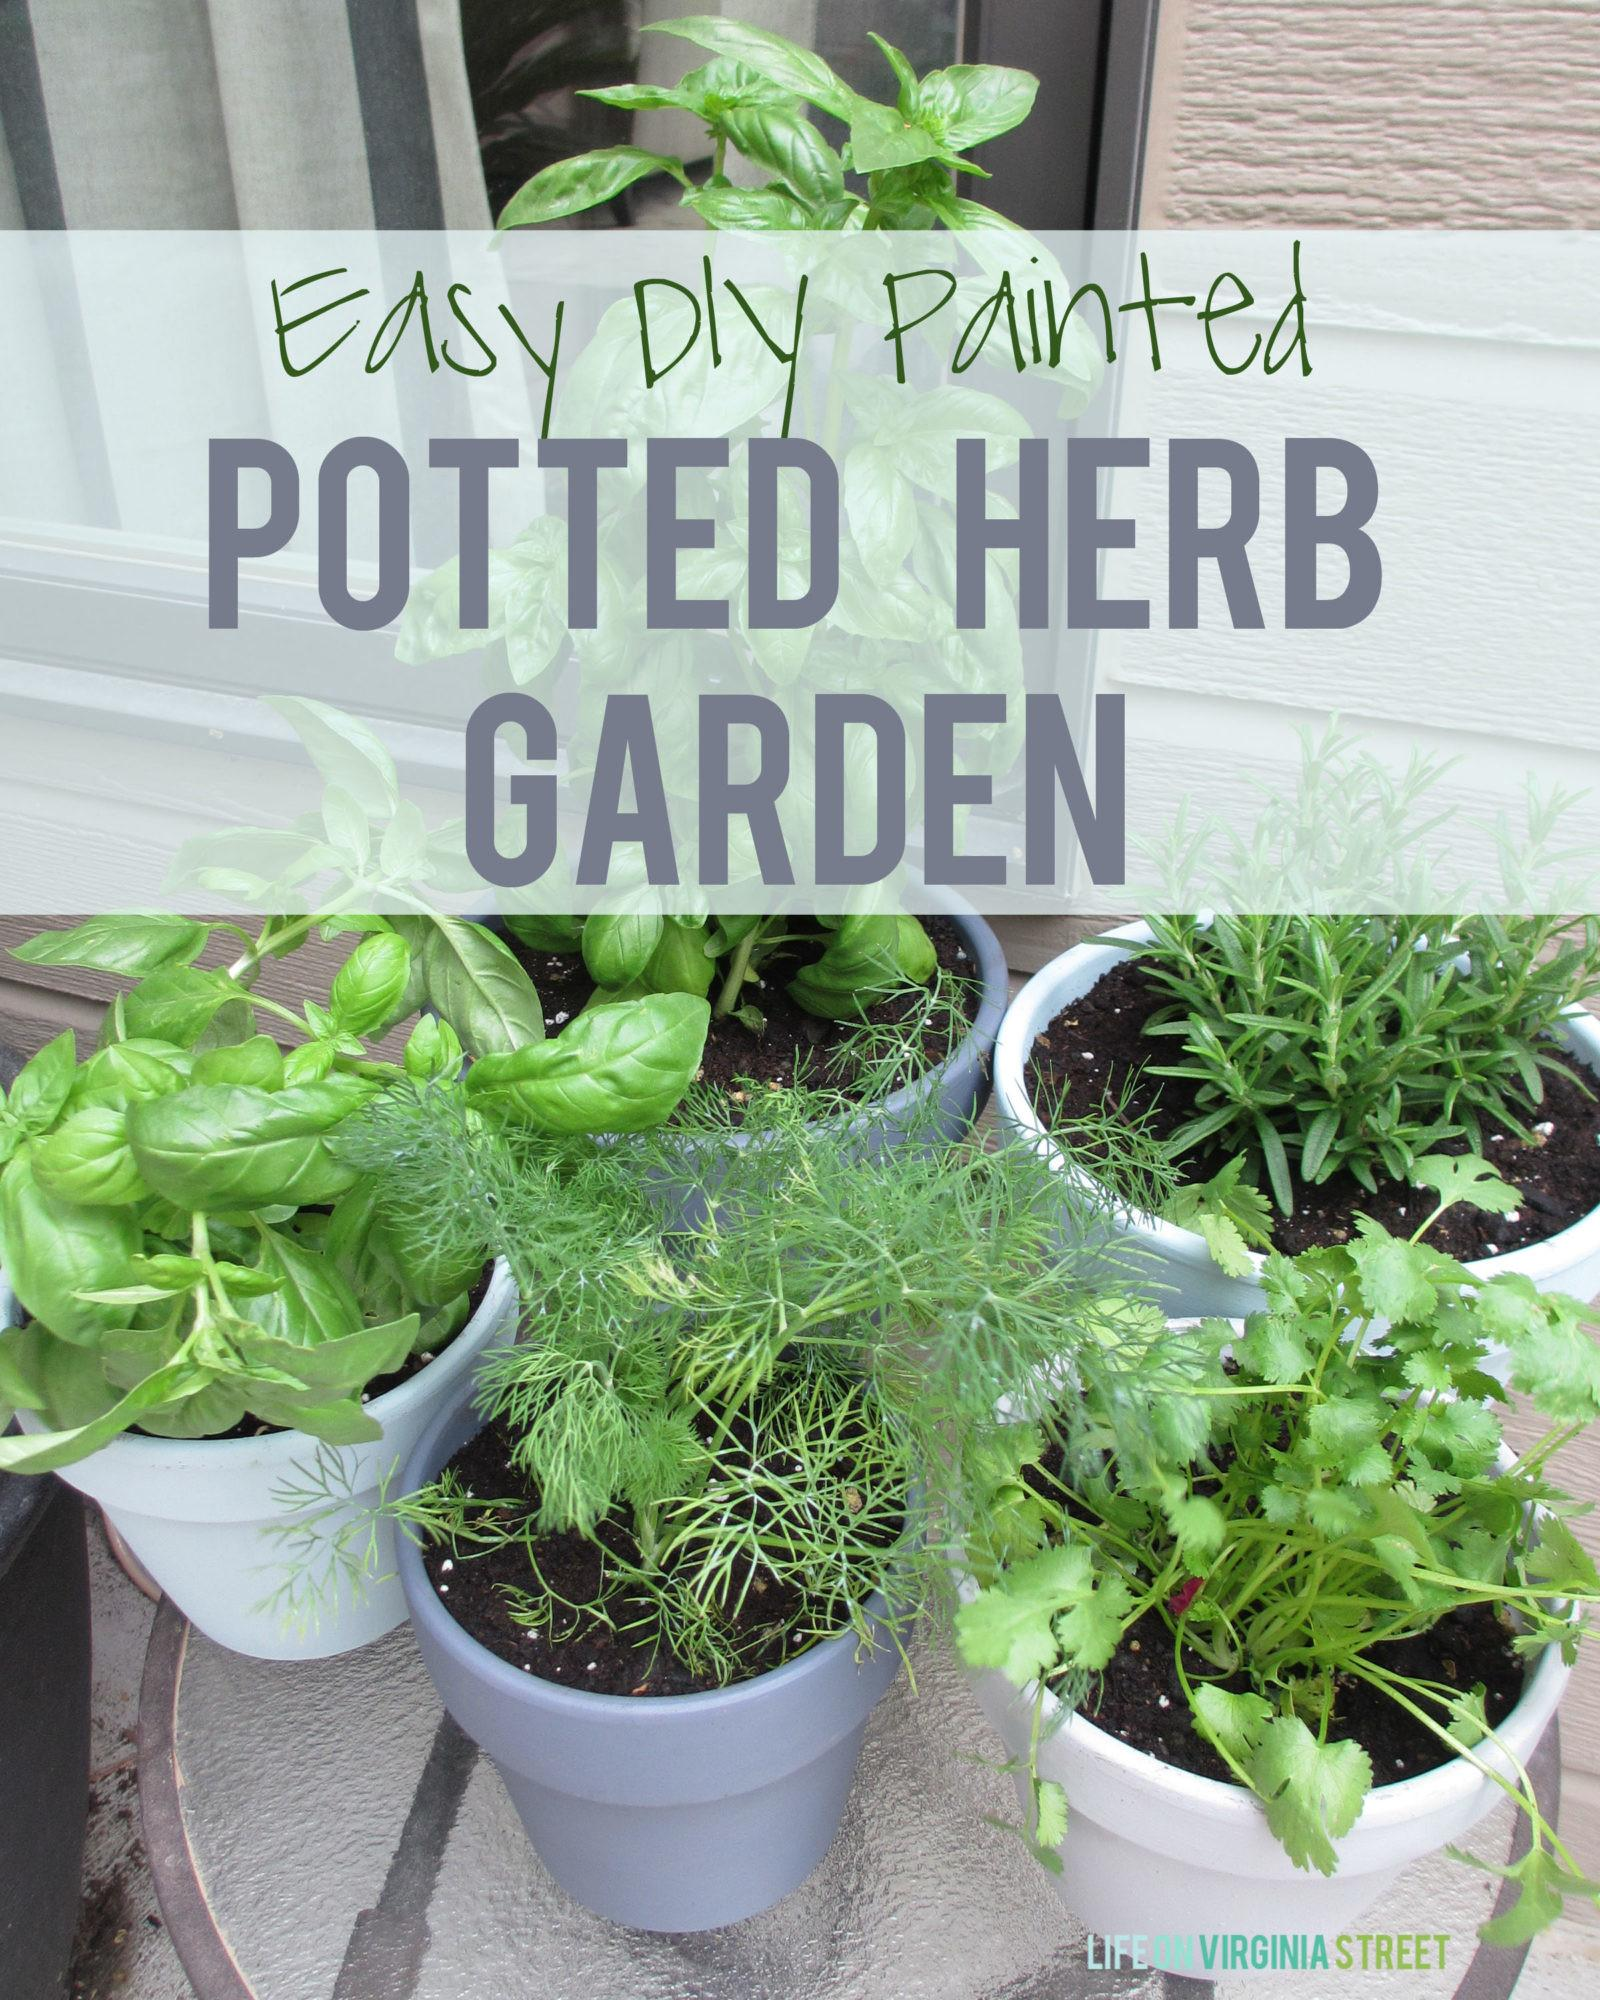 Diy Painted Potted Herb Garden Life Virginia Street